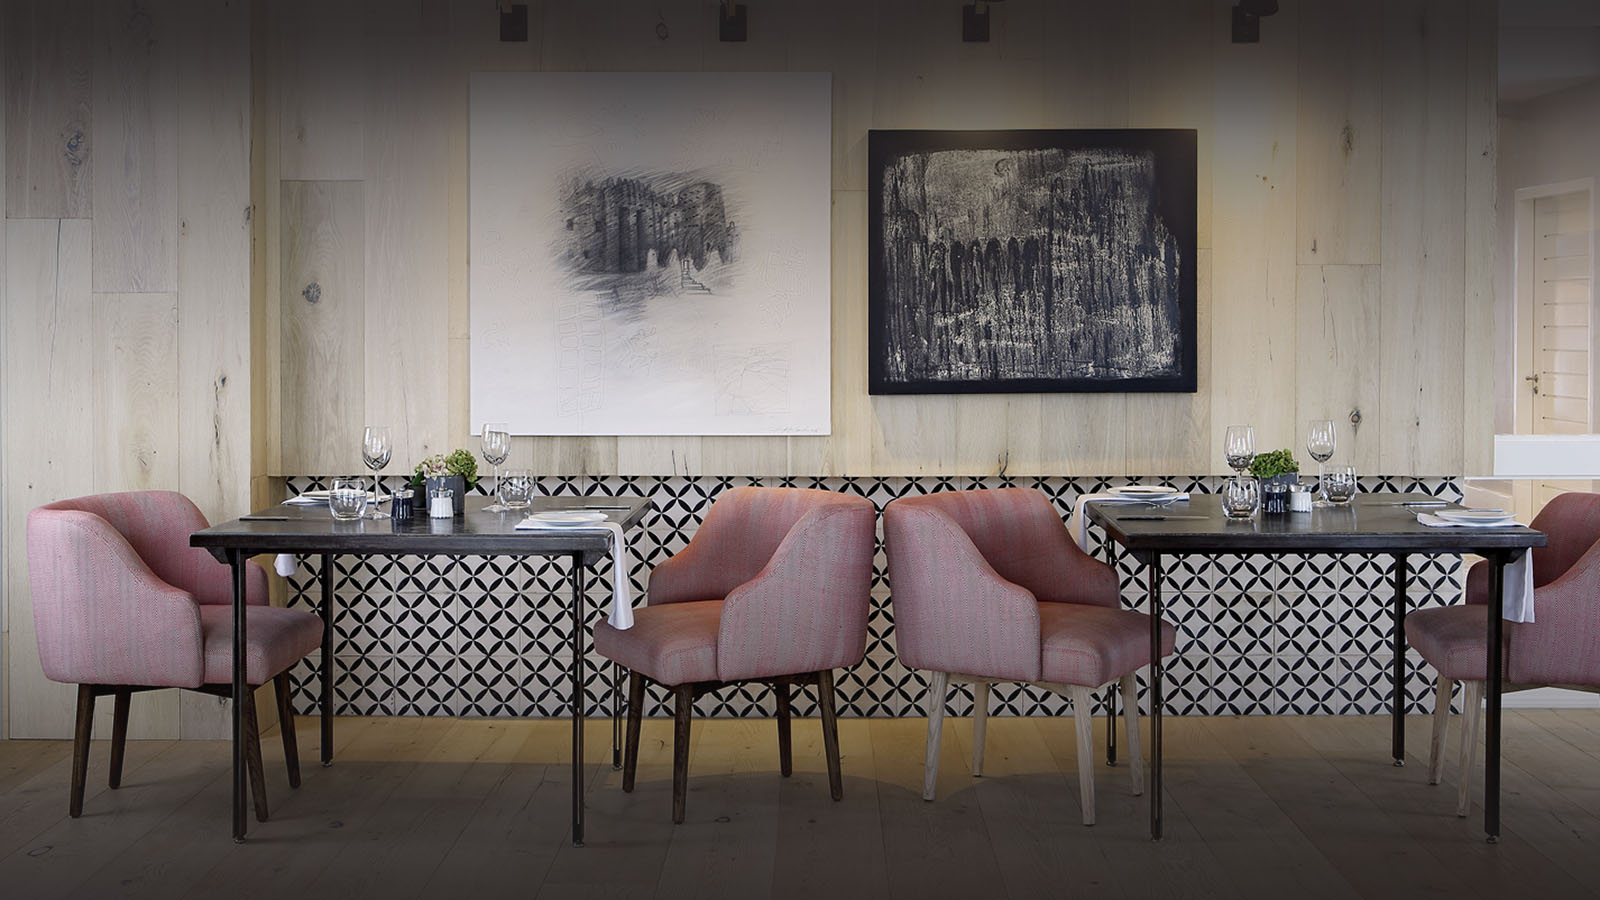 atholplace hotel-johannesburg-lodges-zambia-in-style-south-africa-stylish-modern-dining